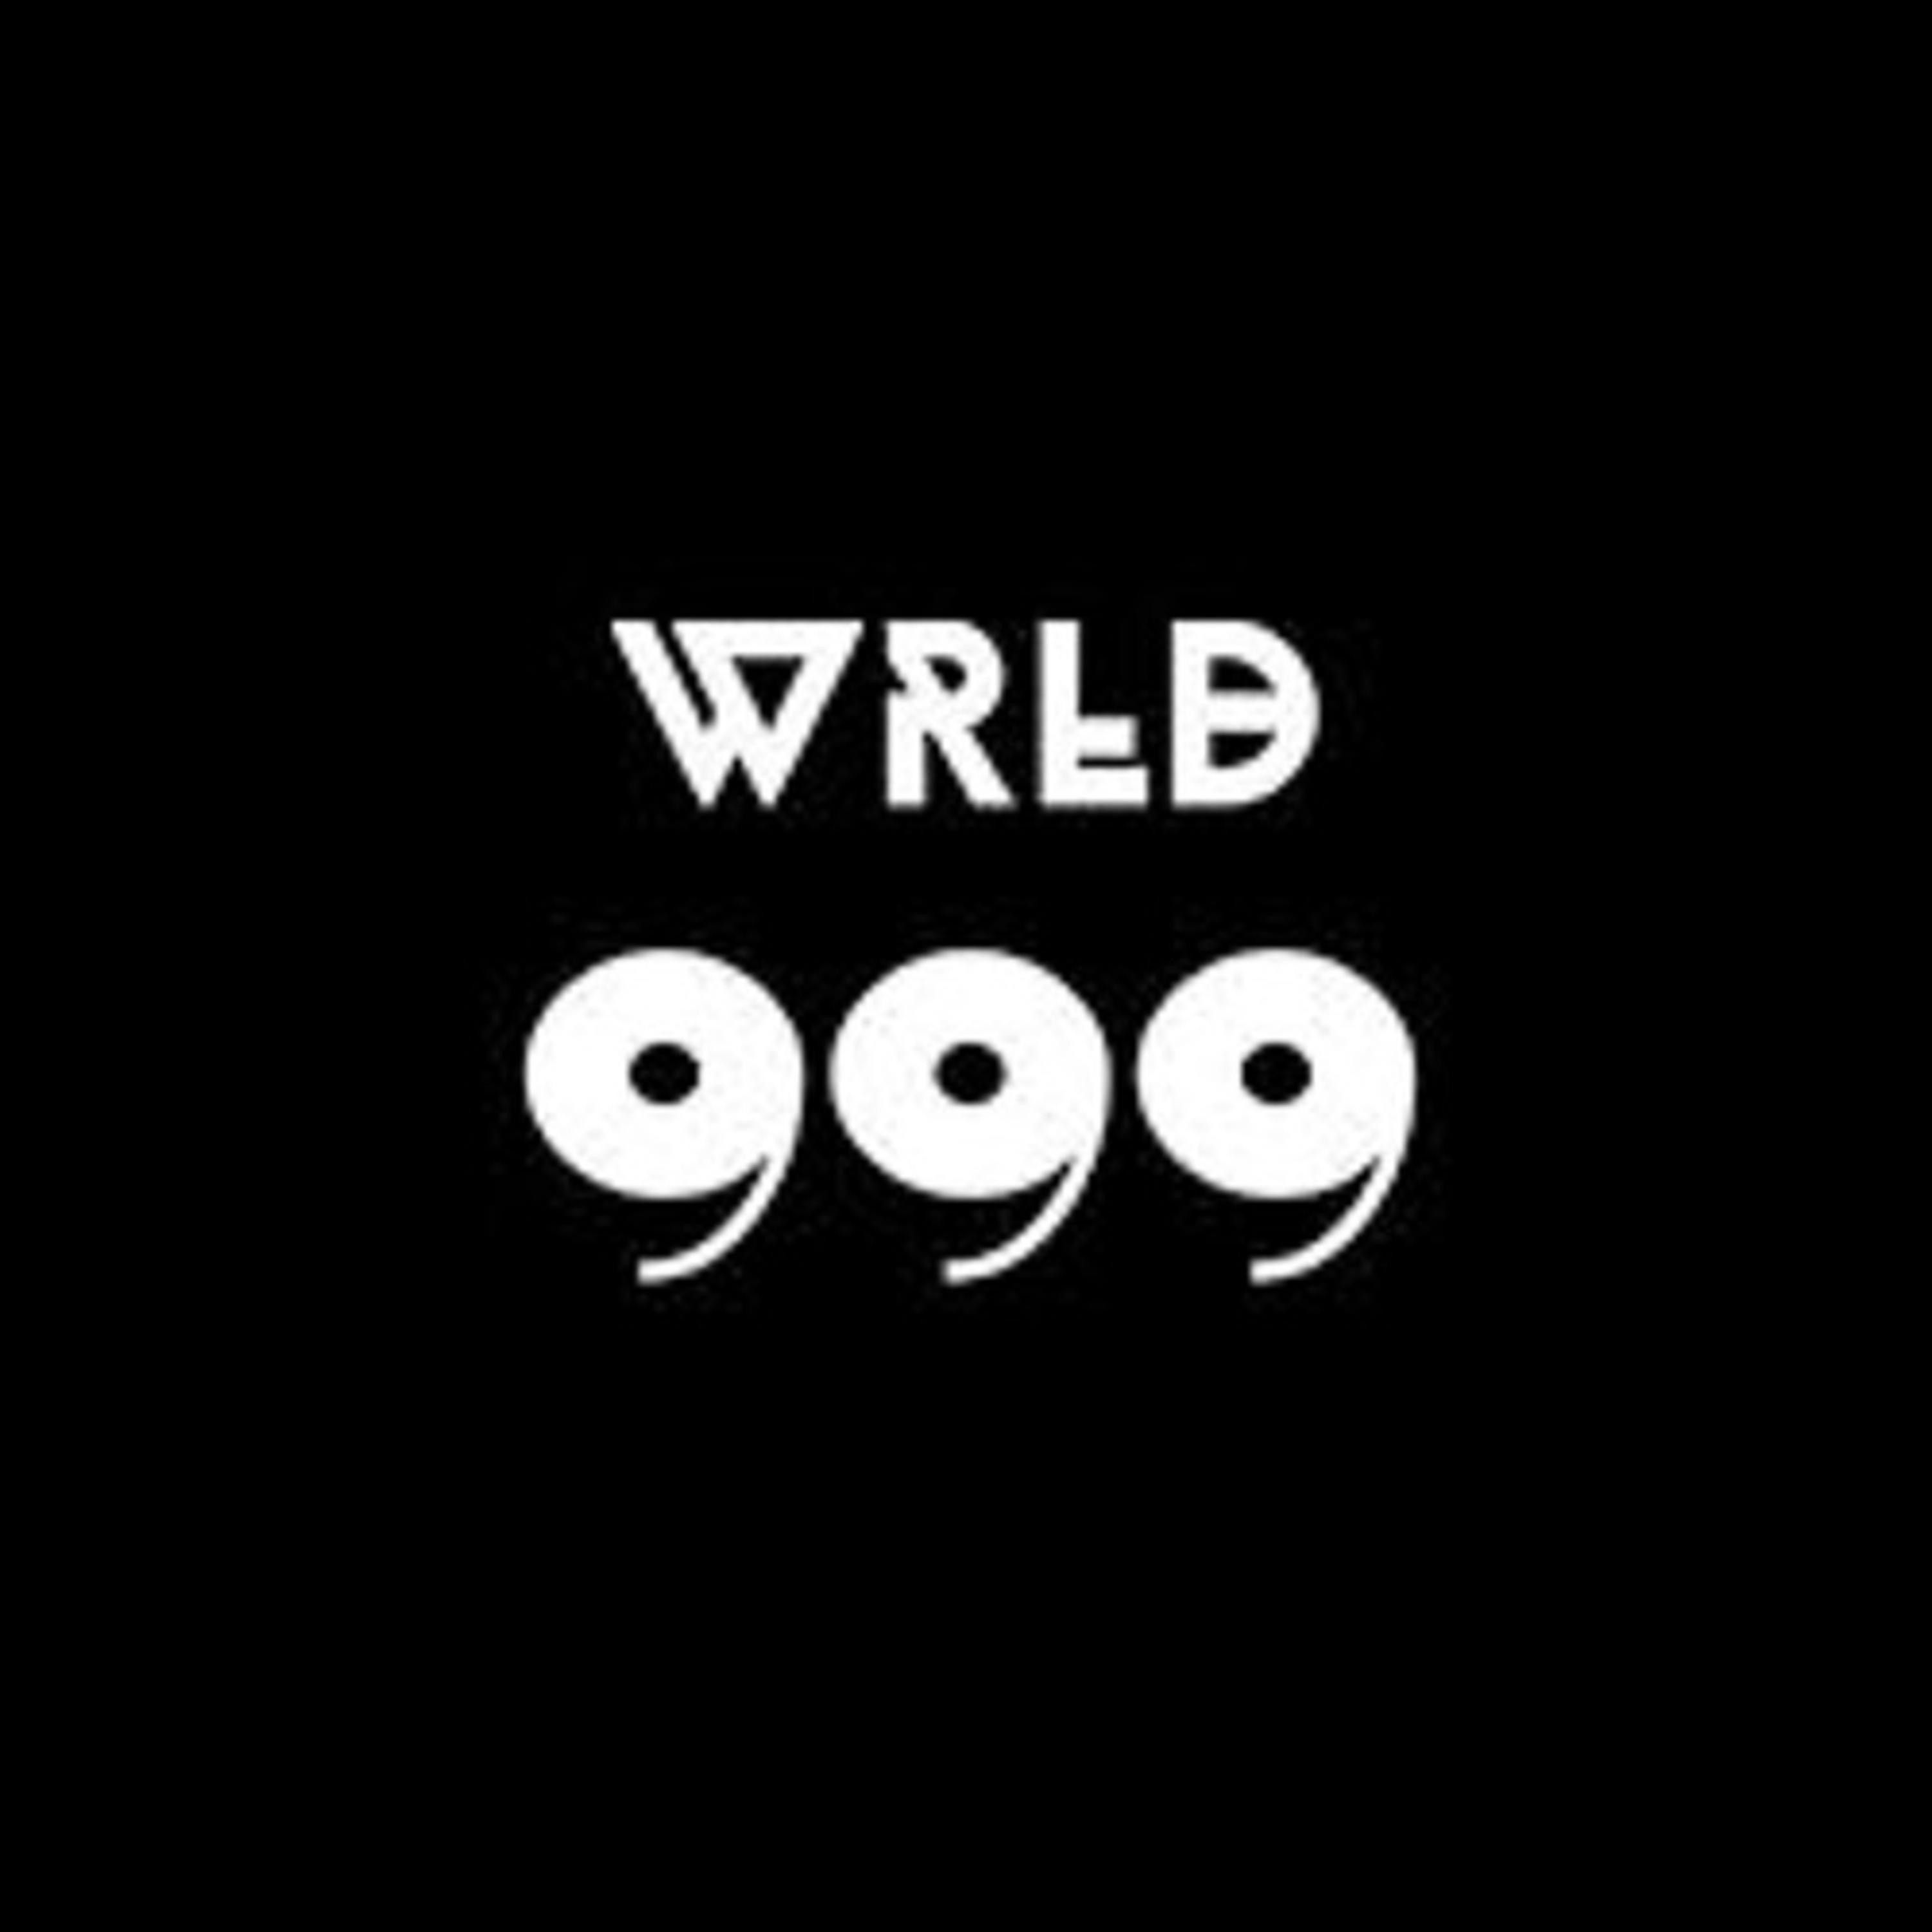 juice wrld black and white wallpapers